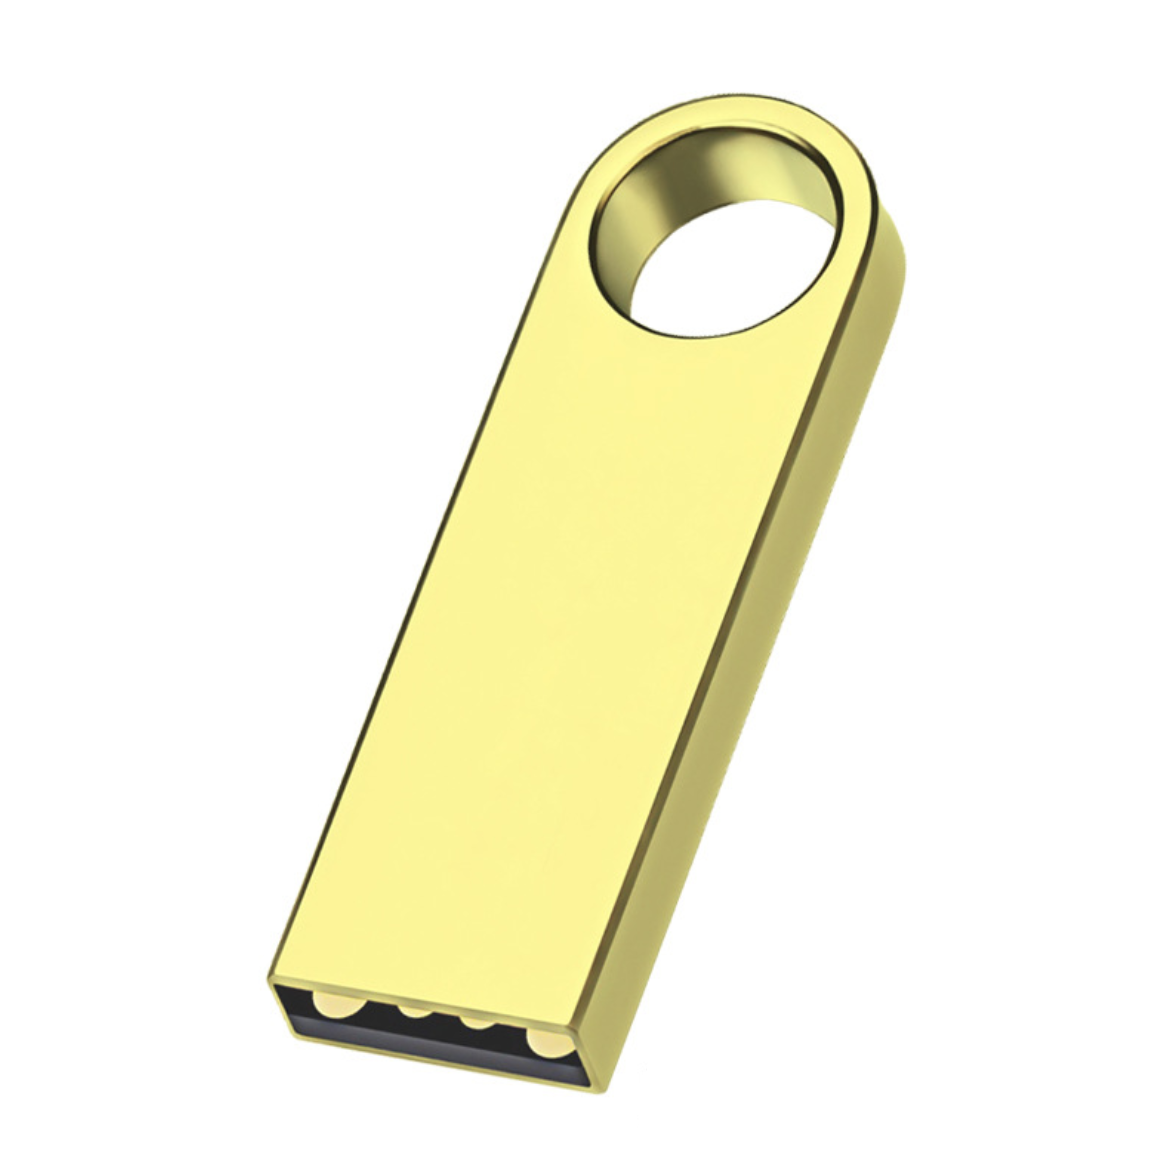 2019 Promotional China Flash Drive Usb Memoria with Custom Logo